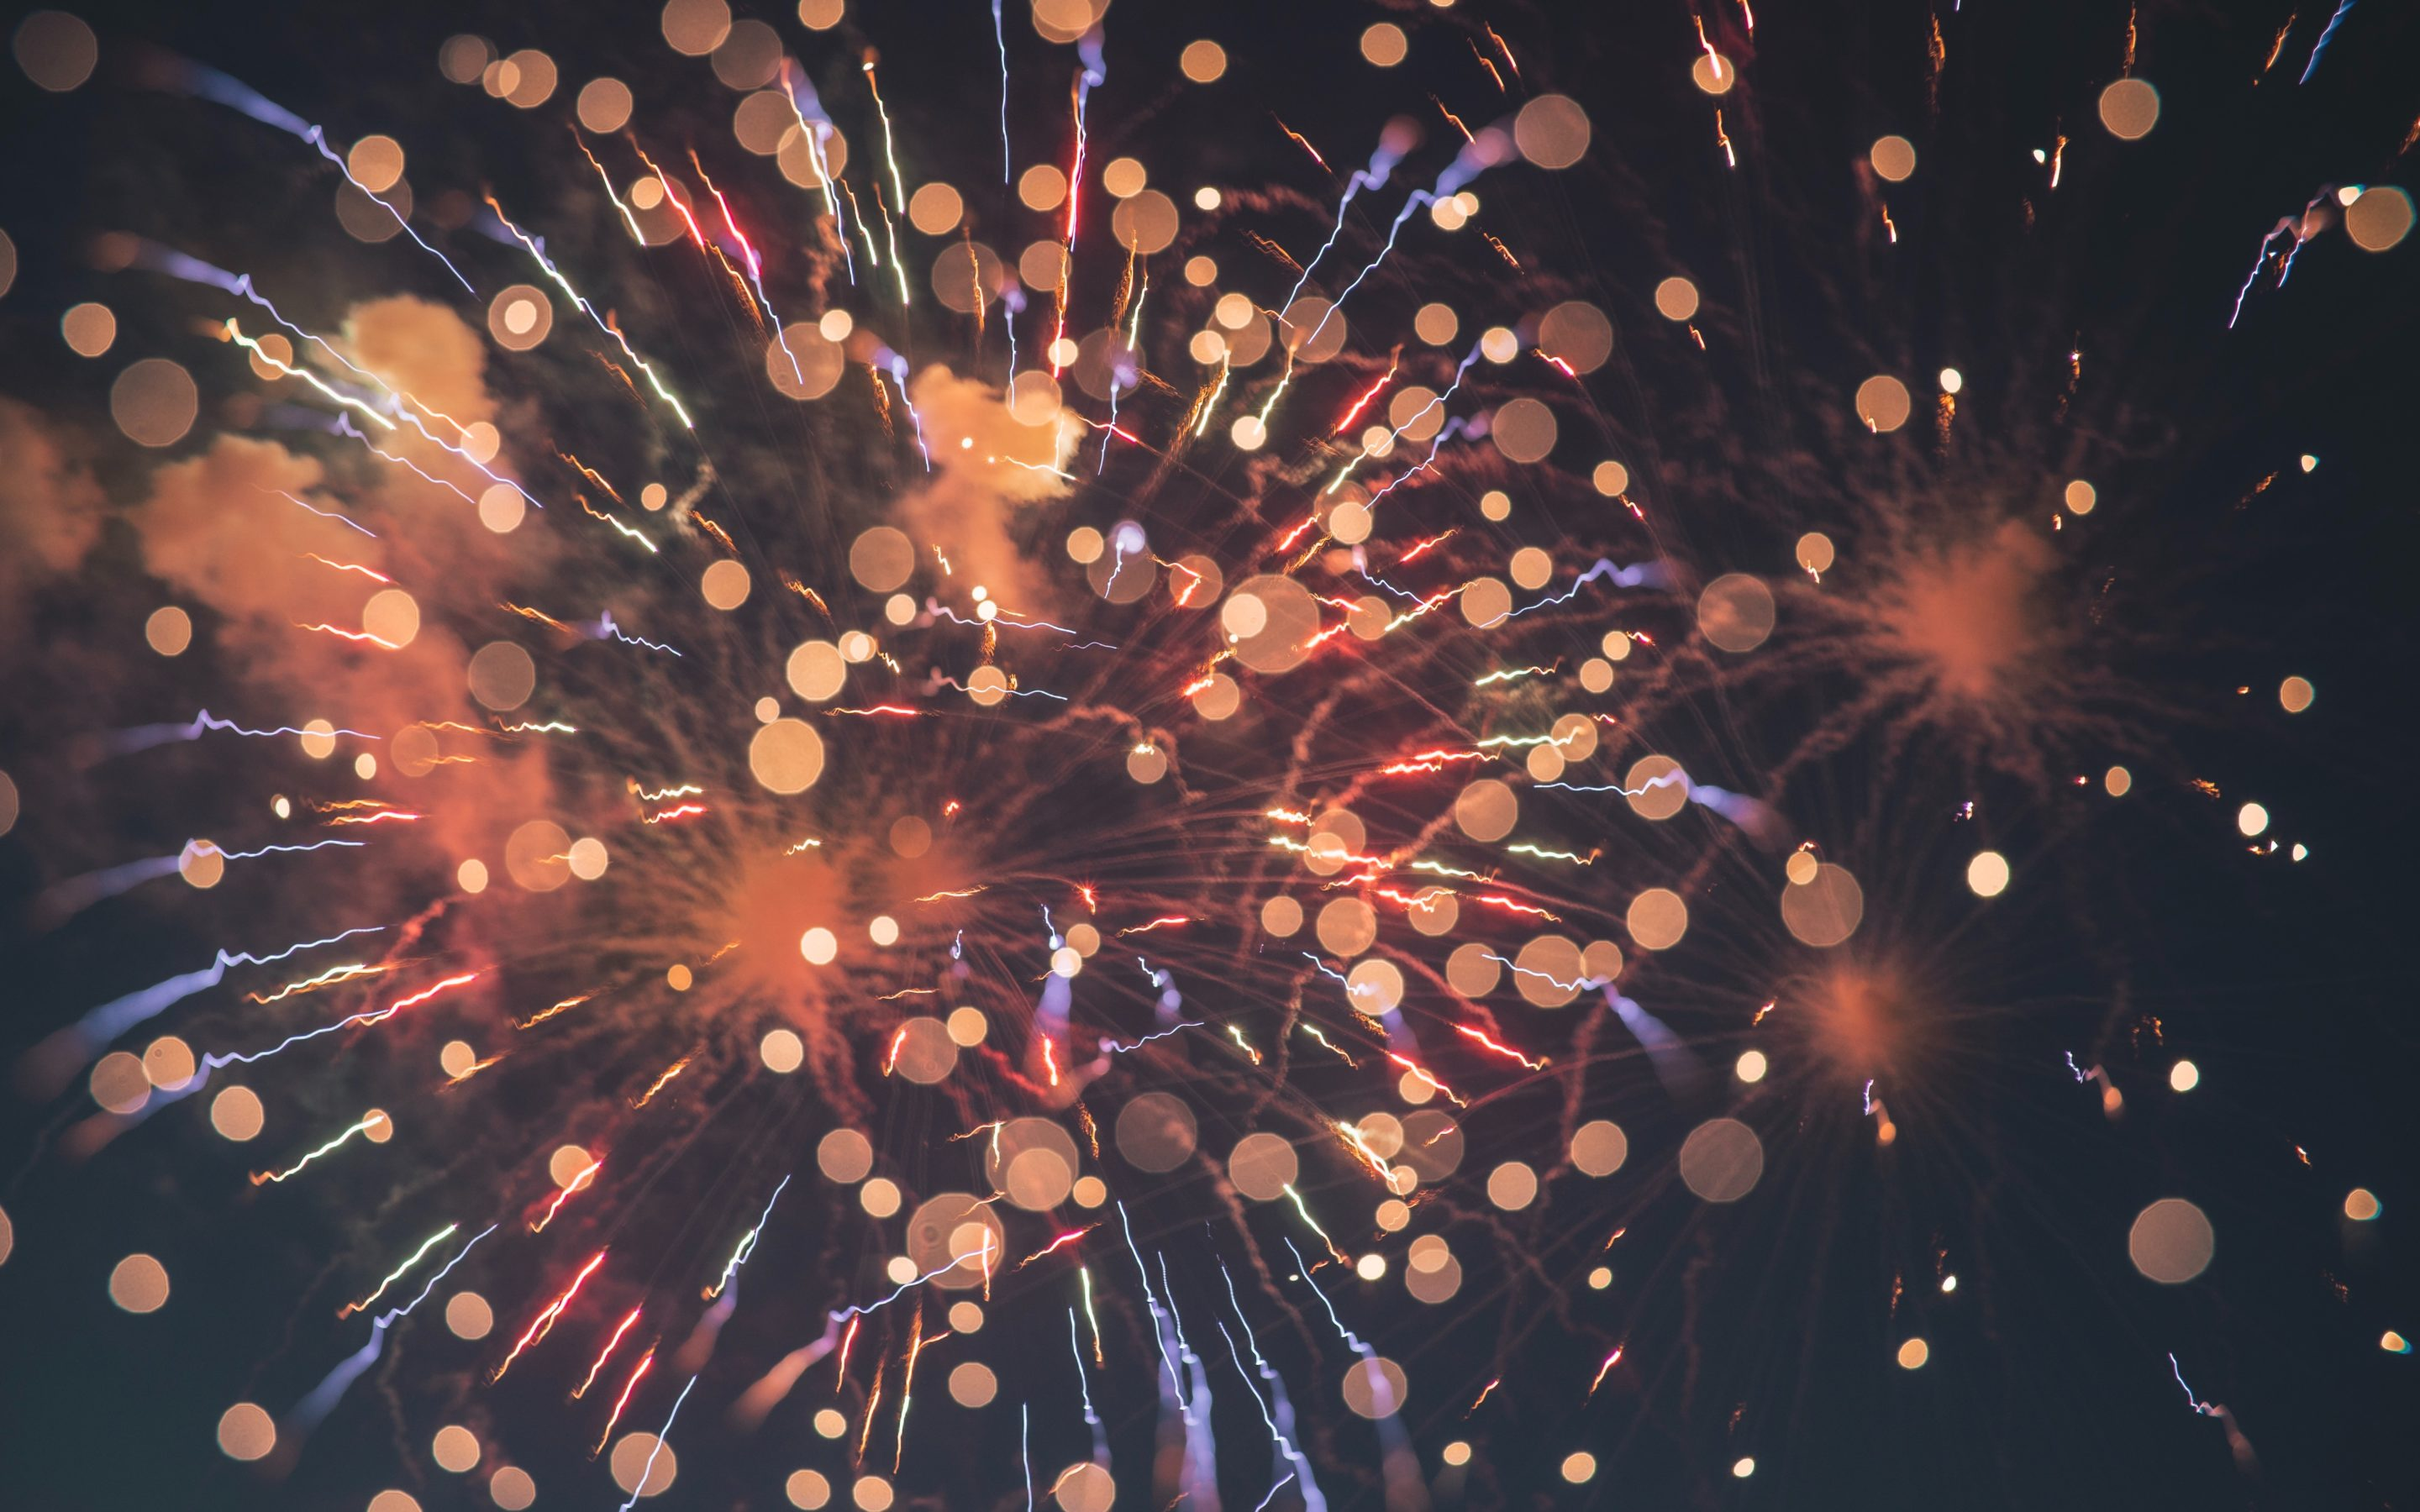 Reflect, celebrate and plan for the New Year